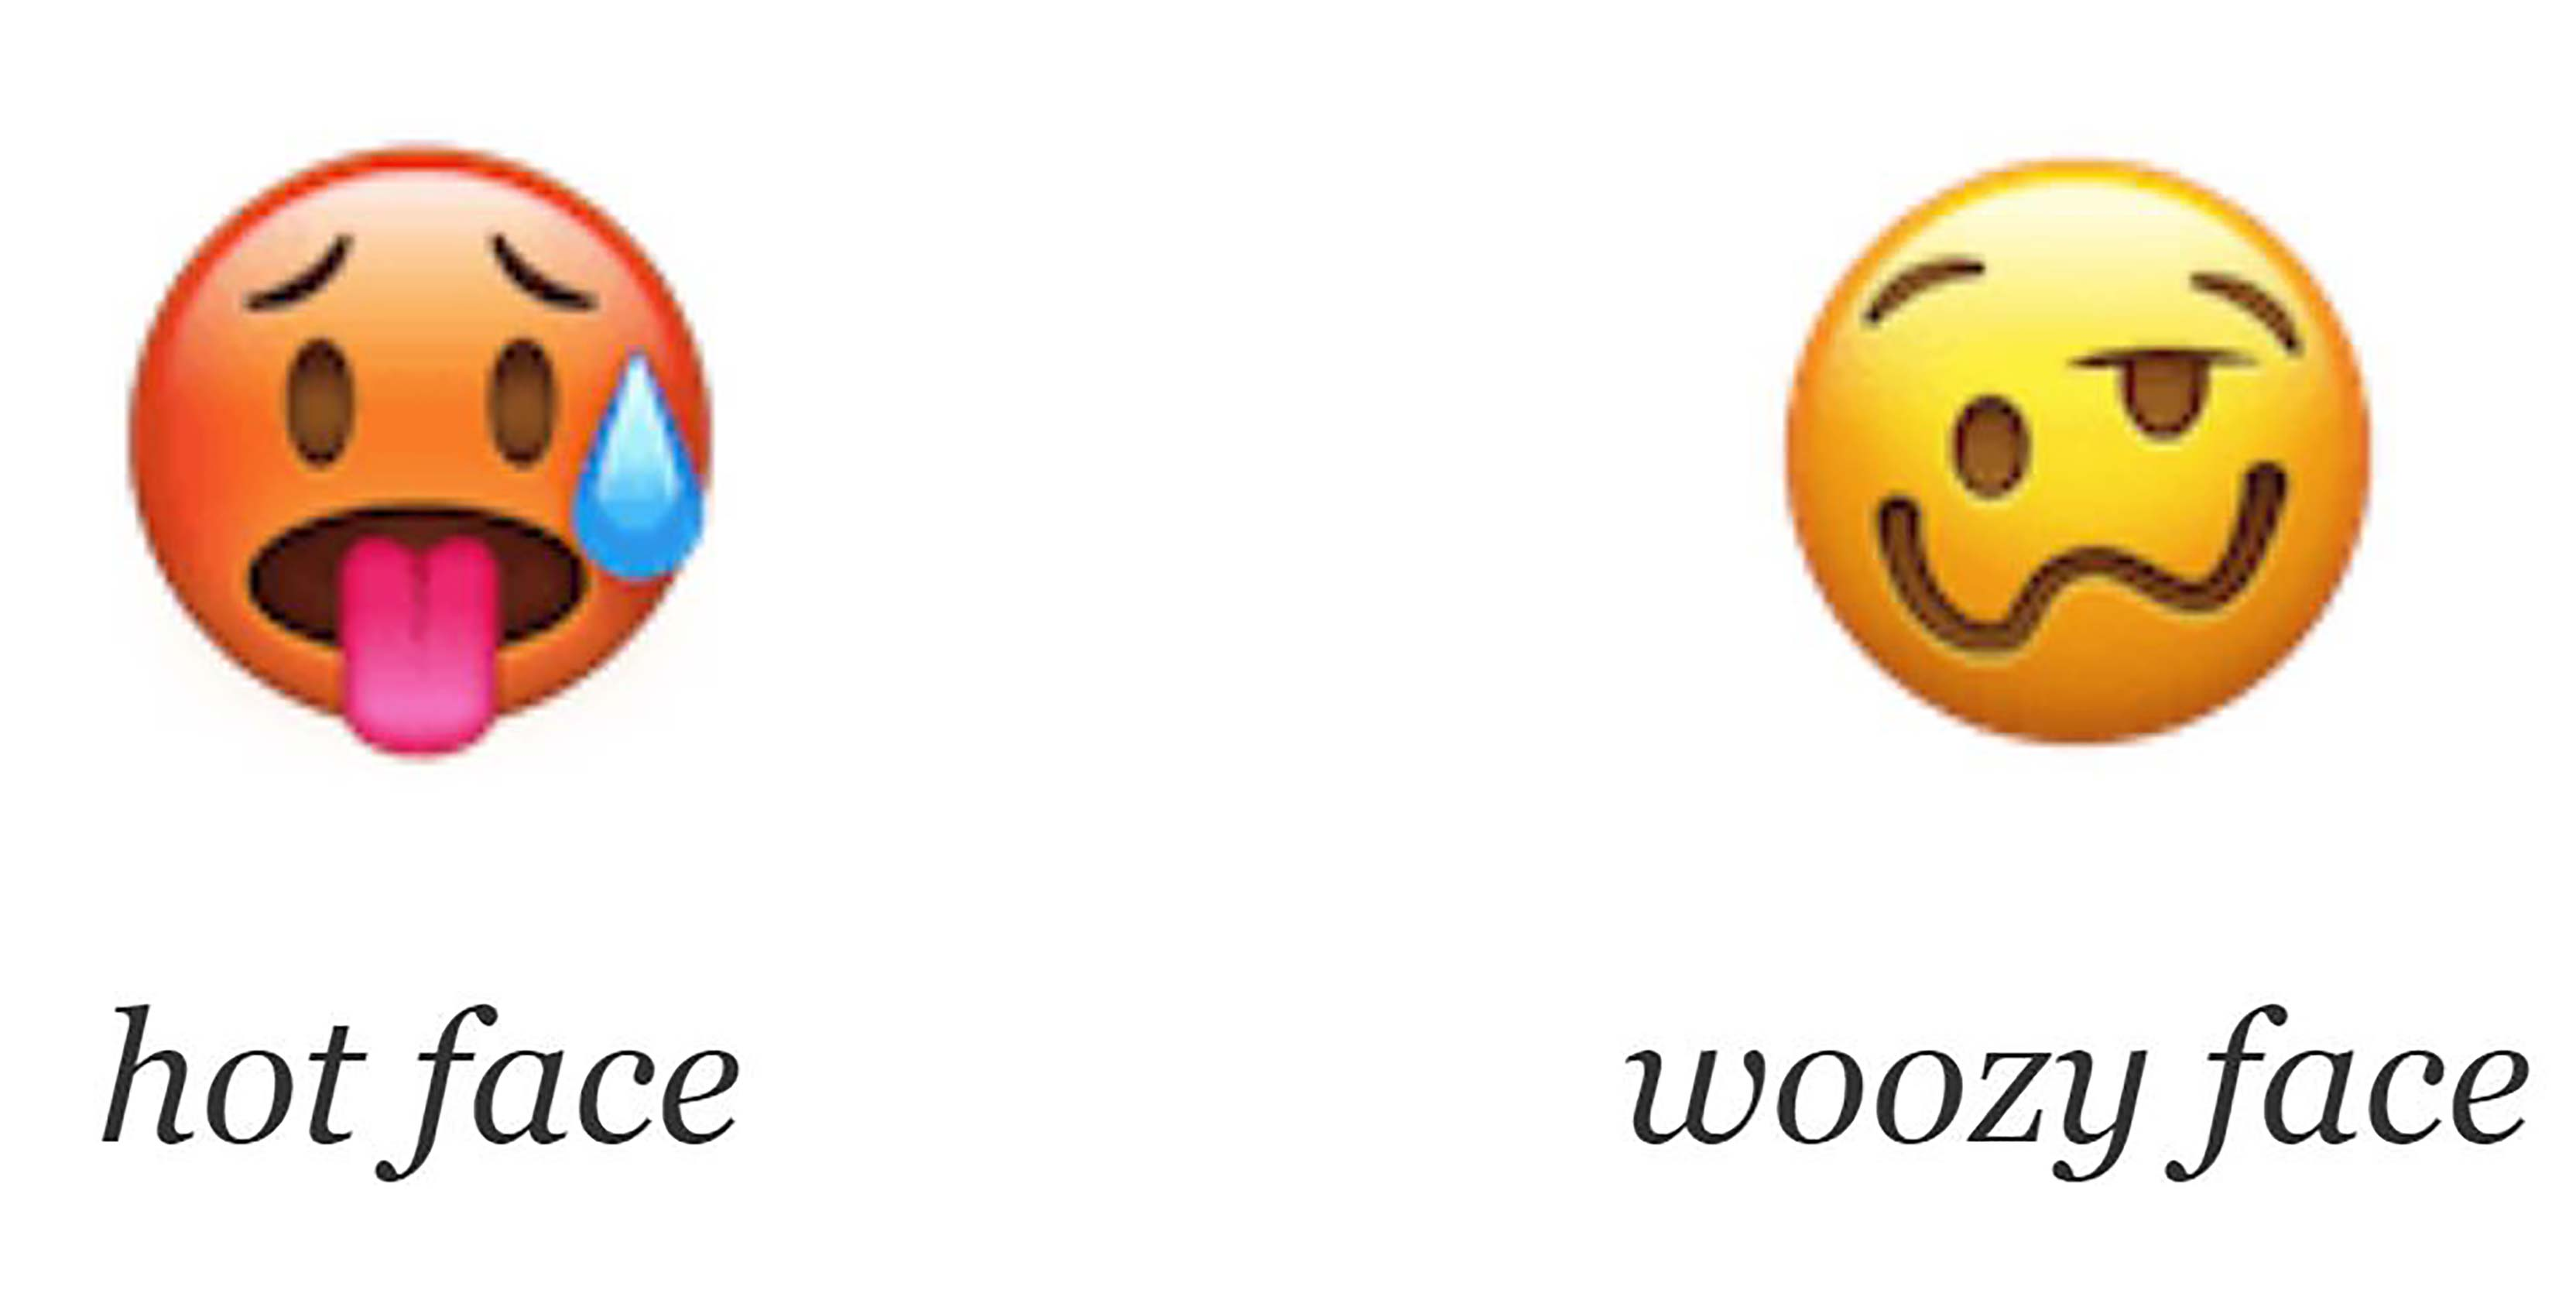 The Unicode Consortium has accepted 157 new emoji, including